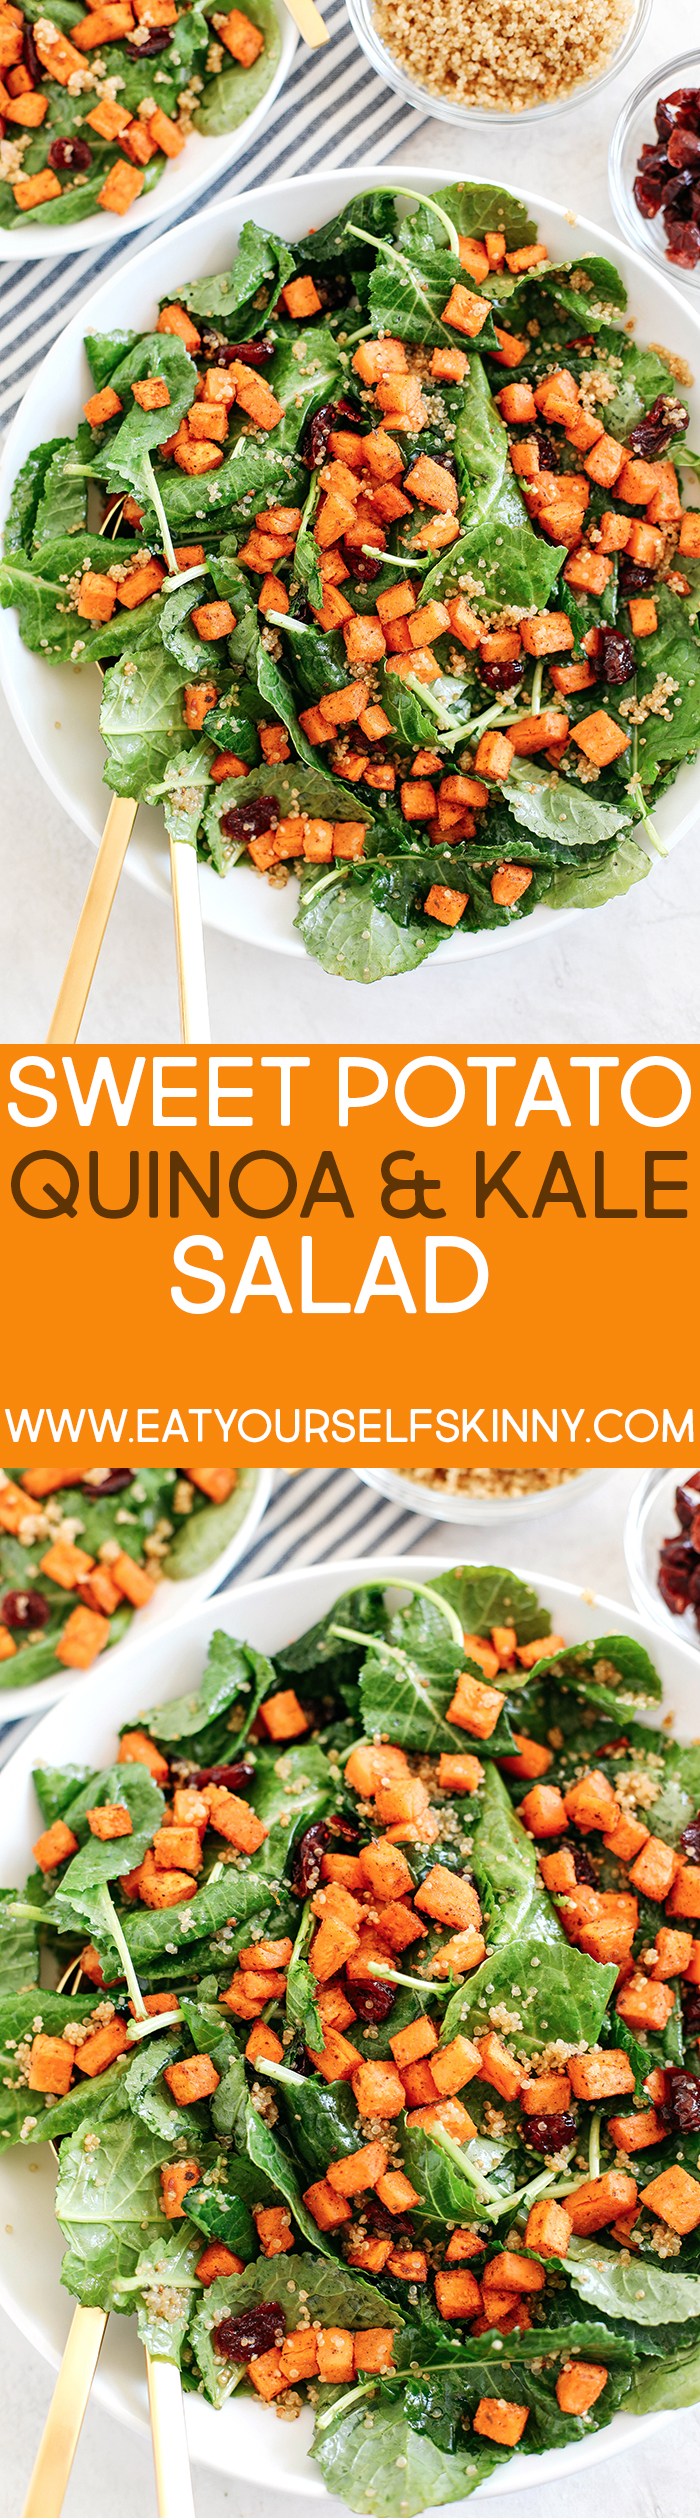 This Roasted Sweet Potato, Quinoa and Kale Salad has all of my favorite ingredients in ONE single dish!  Perfect for lunches or an easy weeknight dinner!